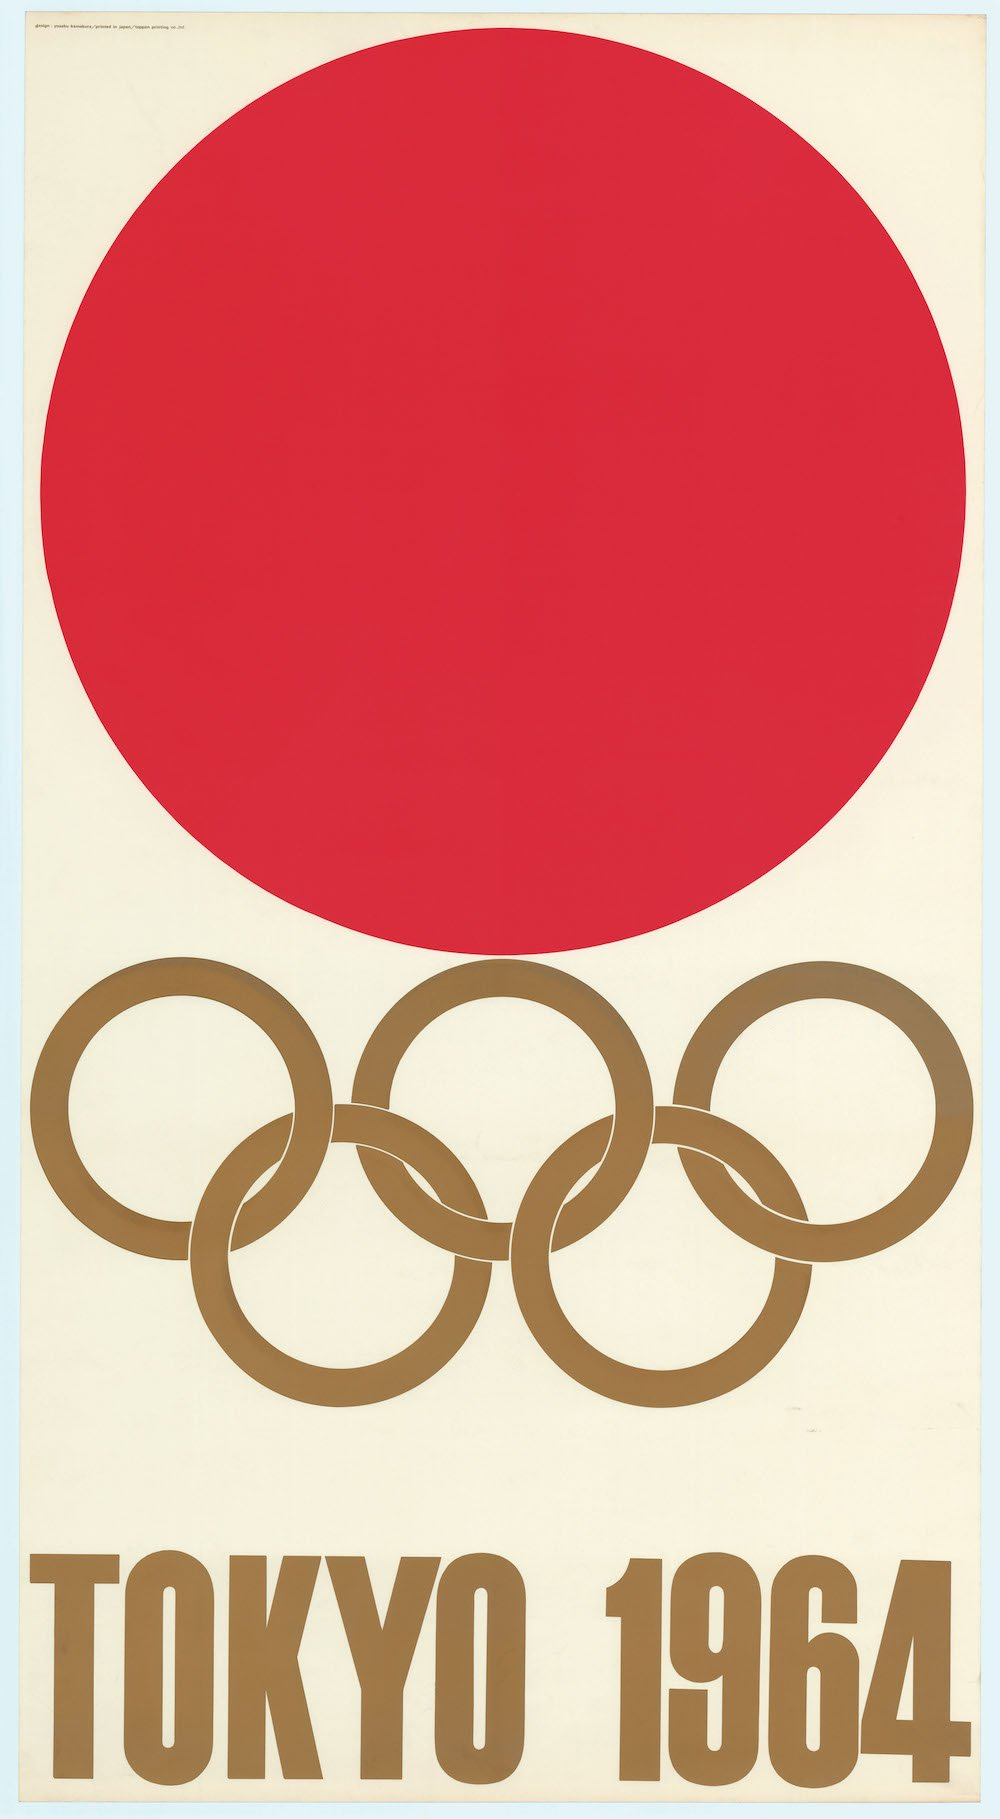 1964 Tokyo Olympics official poster_the hinomaru (sun) flag, Credit - Courtesy of Prince Chichibu Memorial Sports Museum